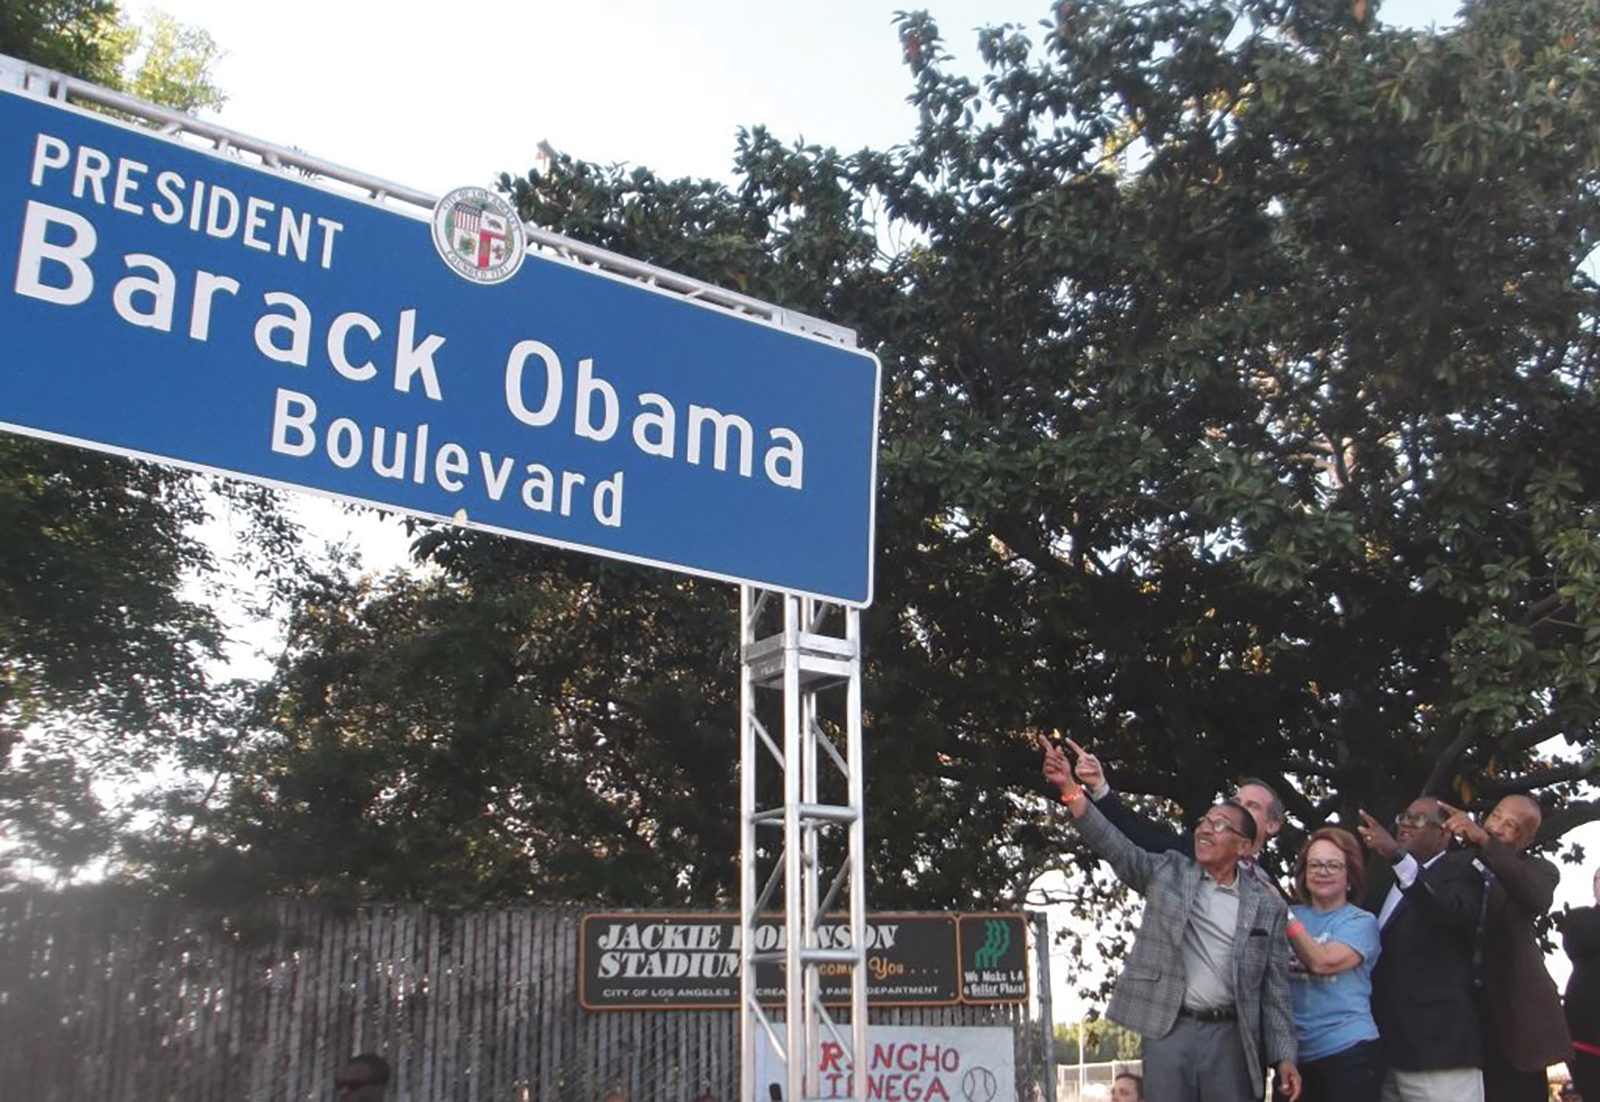 Groovin' at the Obama Boulevard Naming Ceremony and Street Festival pic 1.jpg